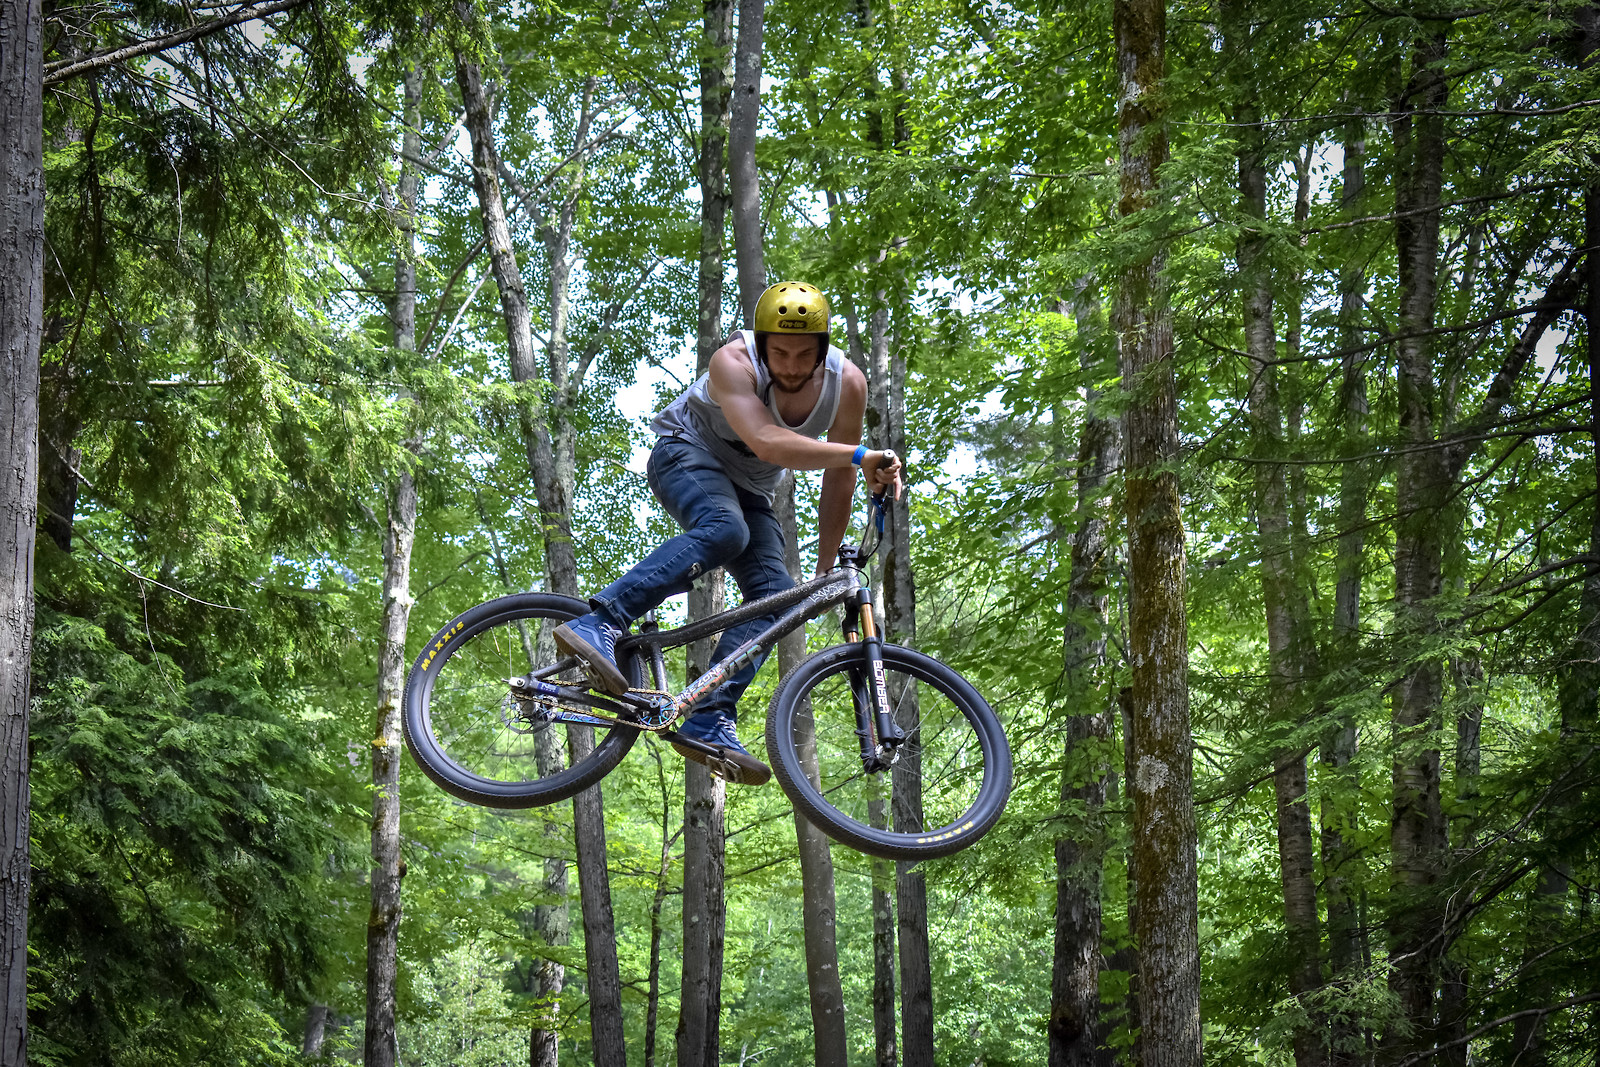 Sherwood Forest - SmashNick - Mountain Biking Pictures - Vital MTB